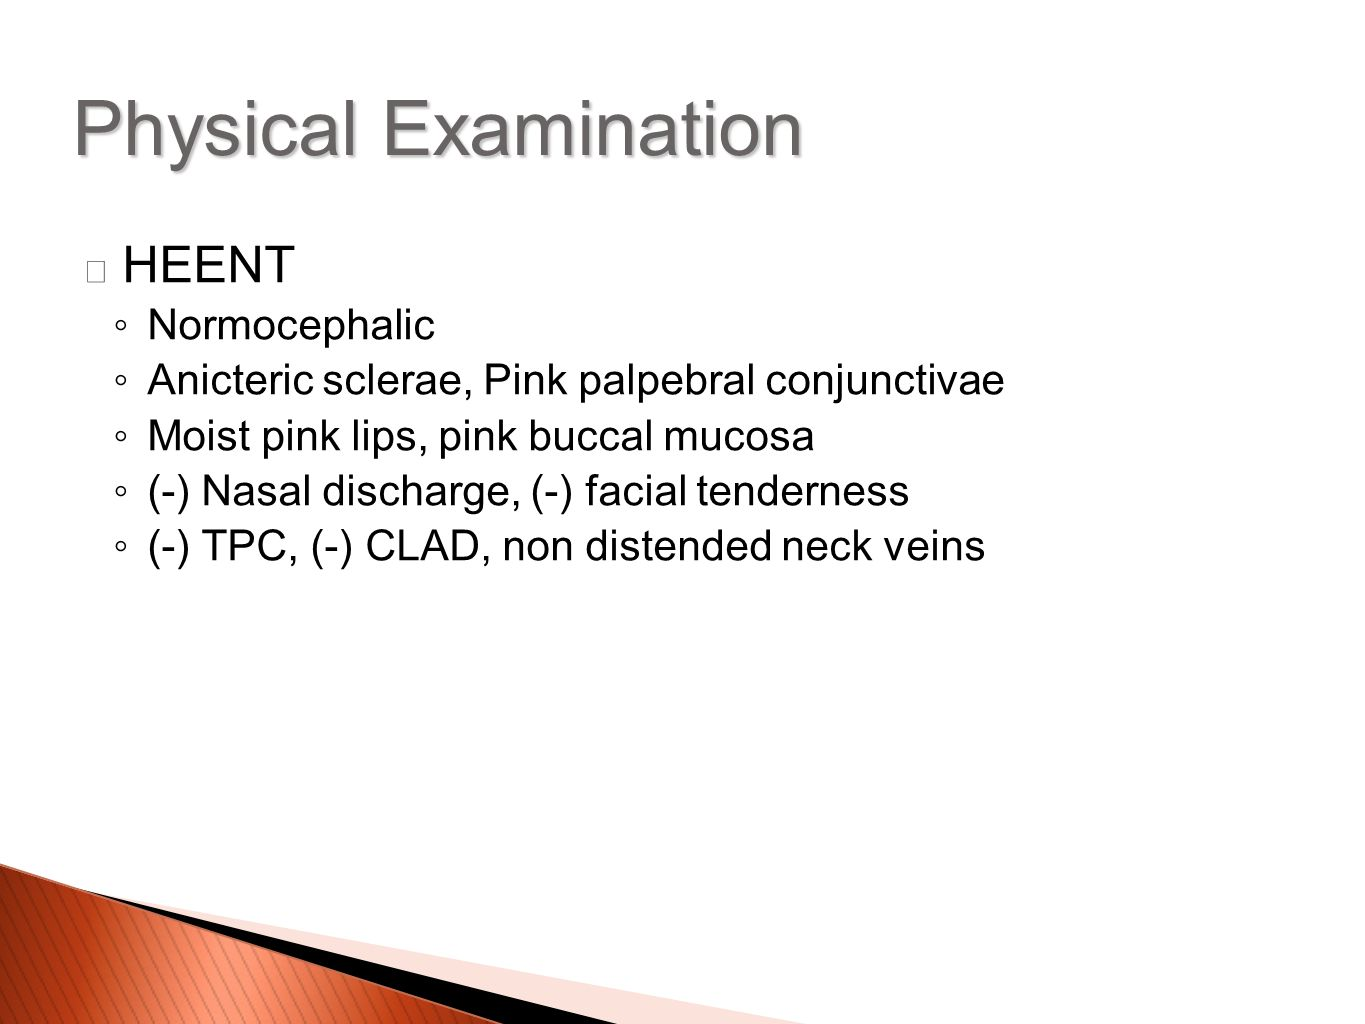 HEENT ◦Normocephalic ◦Anicteric sclerae, Pink palpebral conjunctivae ◦Moist pink lips, pink buccal mucosa ◦(-) Nasal discharge, (-) facial tenderness ◦(-) TPC, (-) CLAD, non distended neck veins Physical Examination